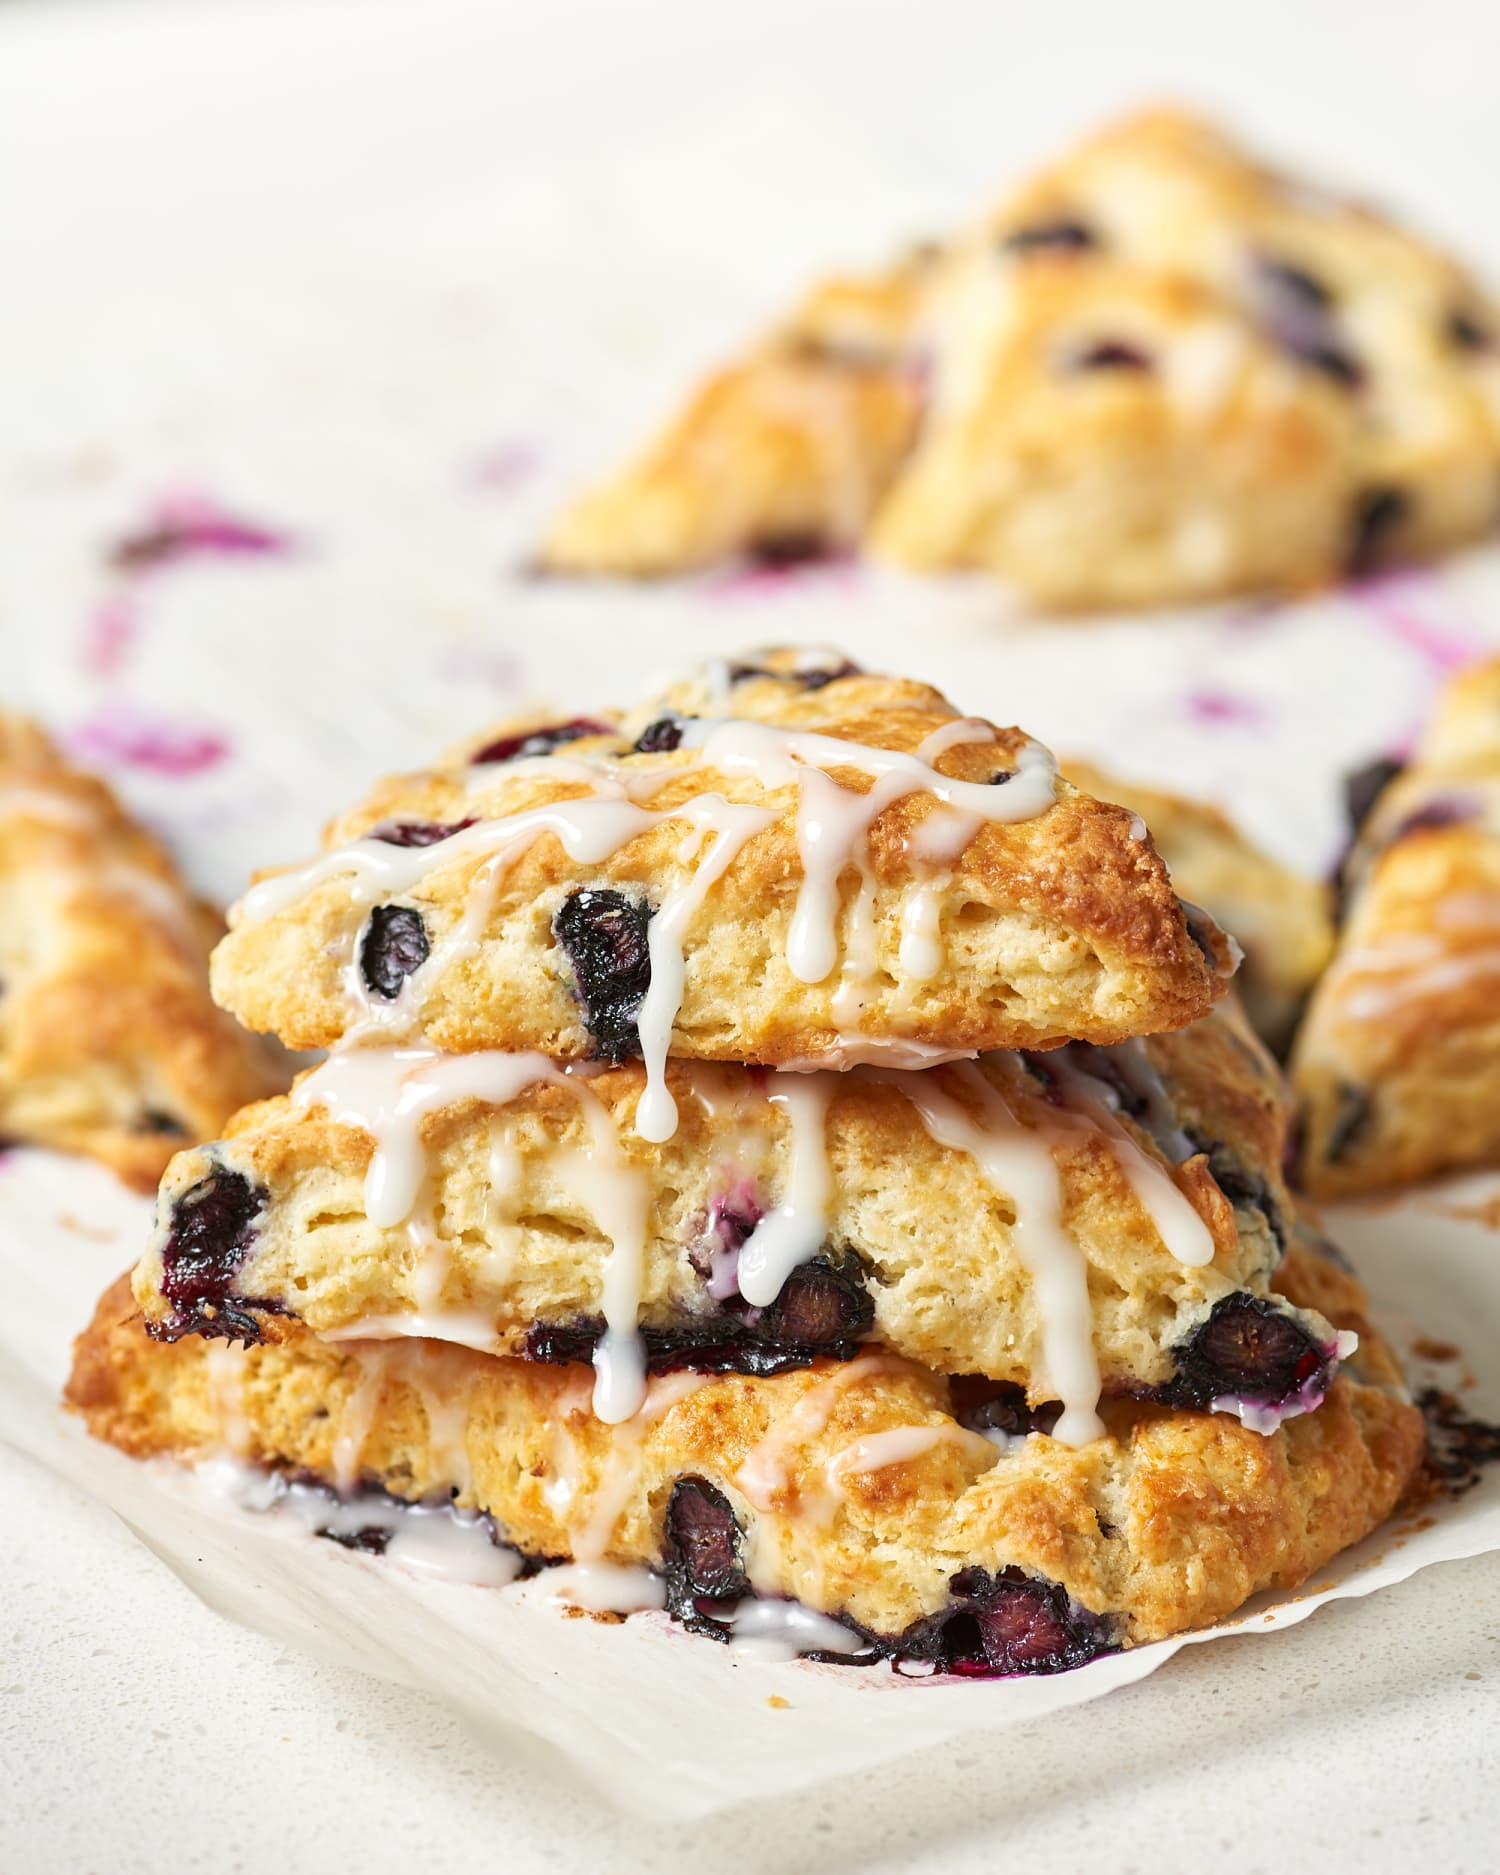 Recipe: Buttermilk Blueberry Lemon Scones